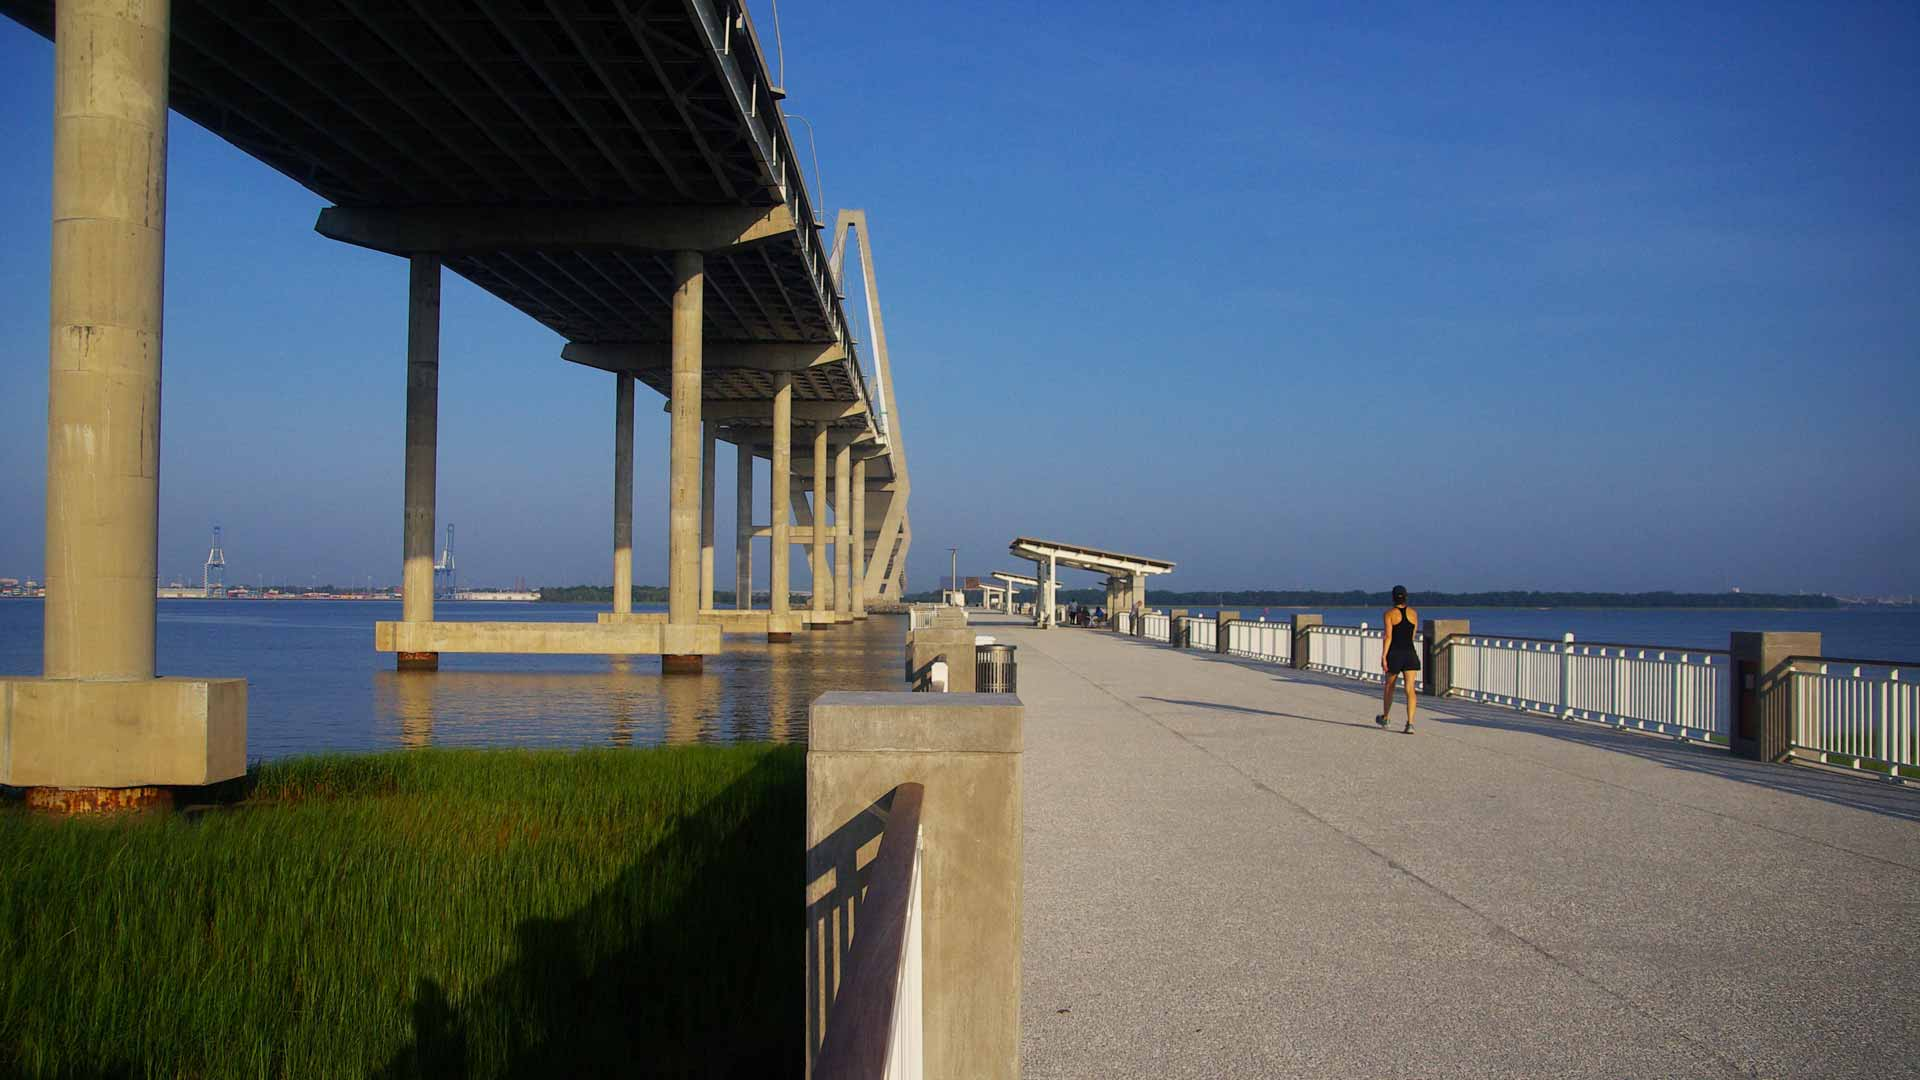 Mount Pleasant's waterfront pier as photographed by The Digitel